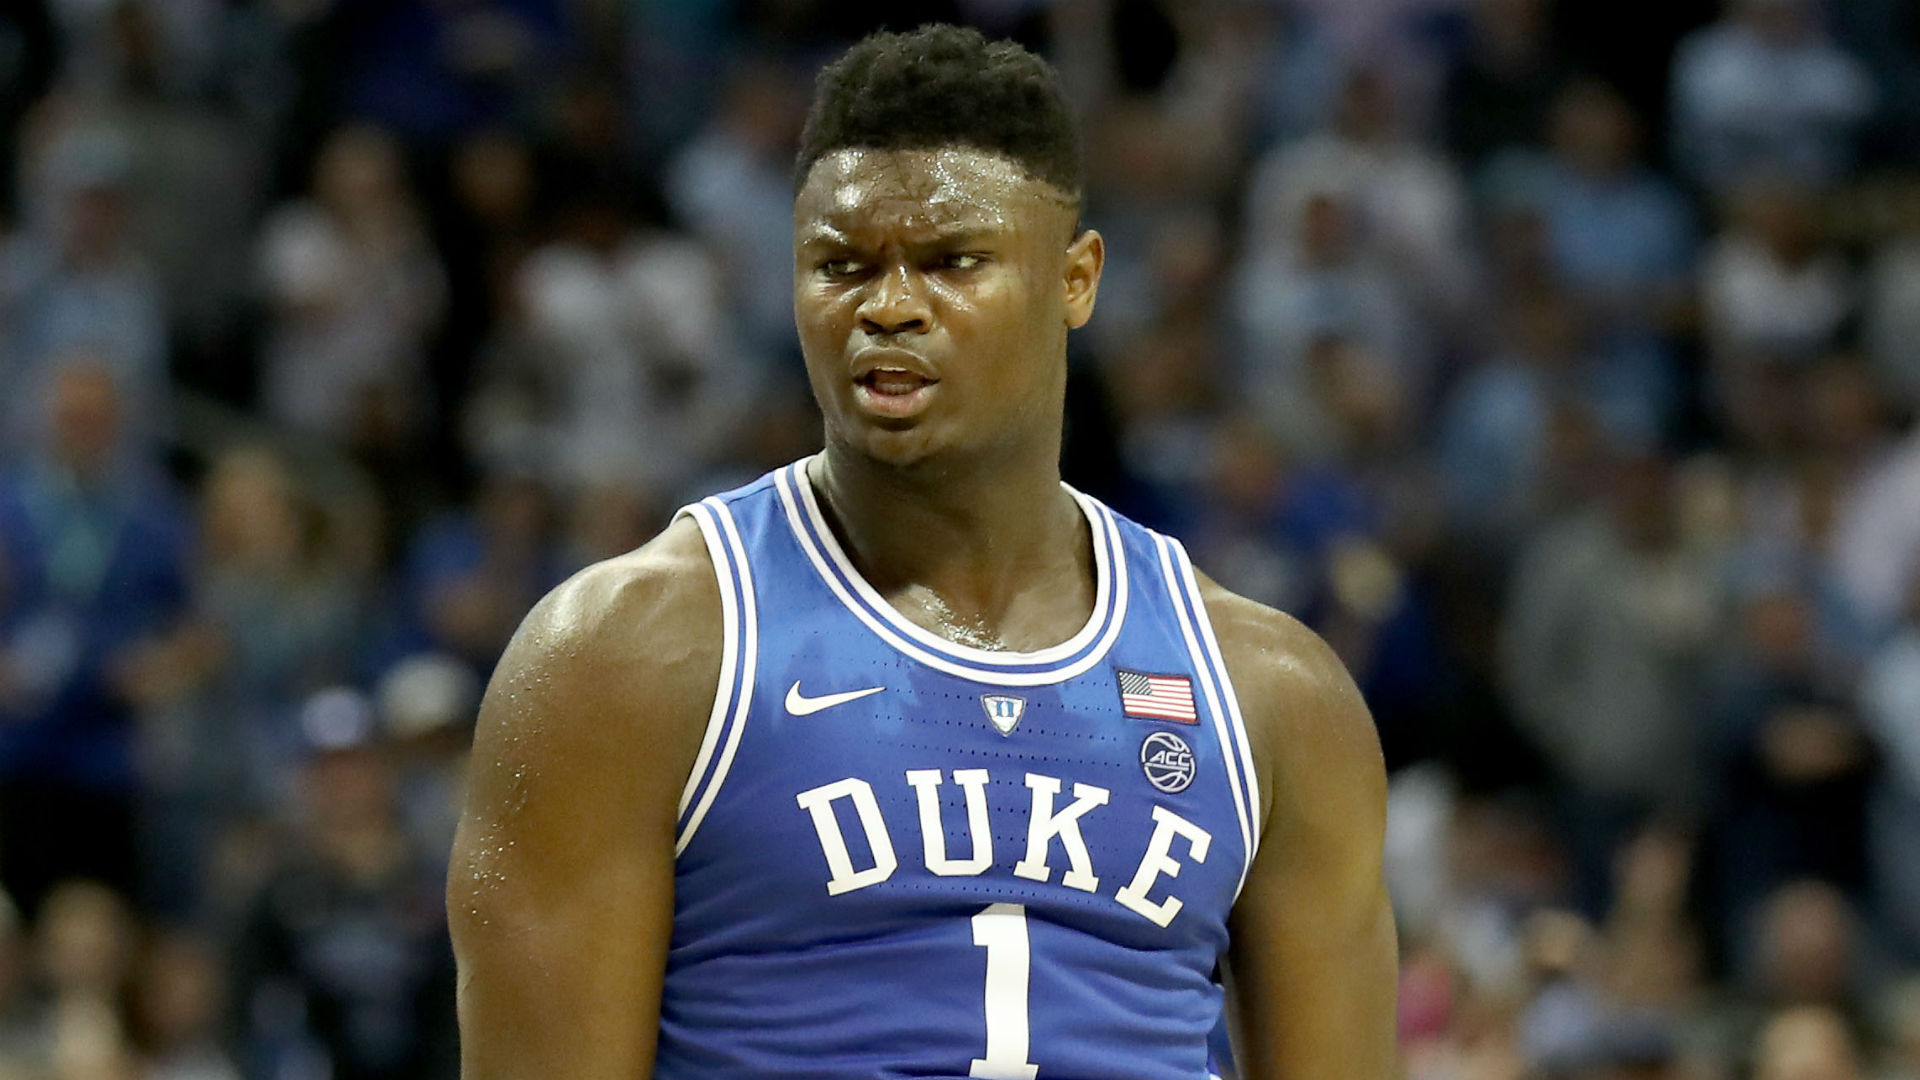 Zion Williamson puts on a show as Duke nips rival North Carolina